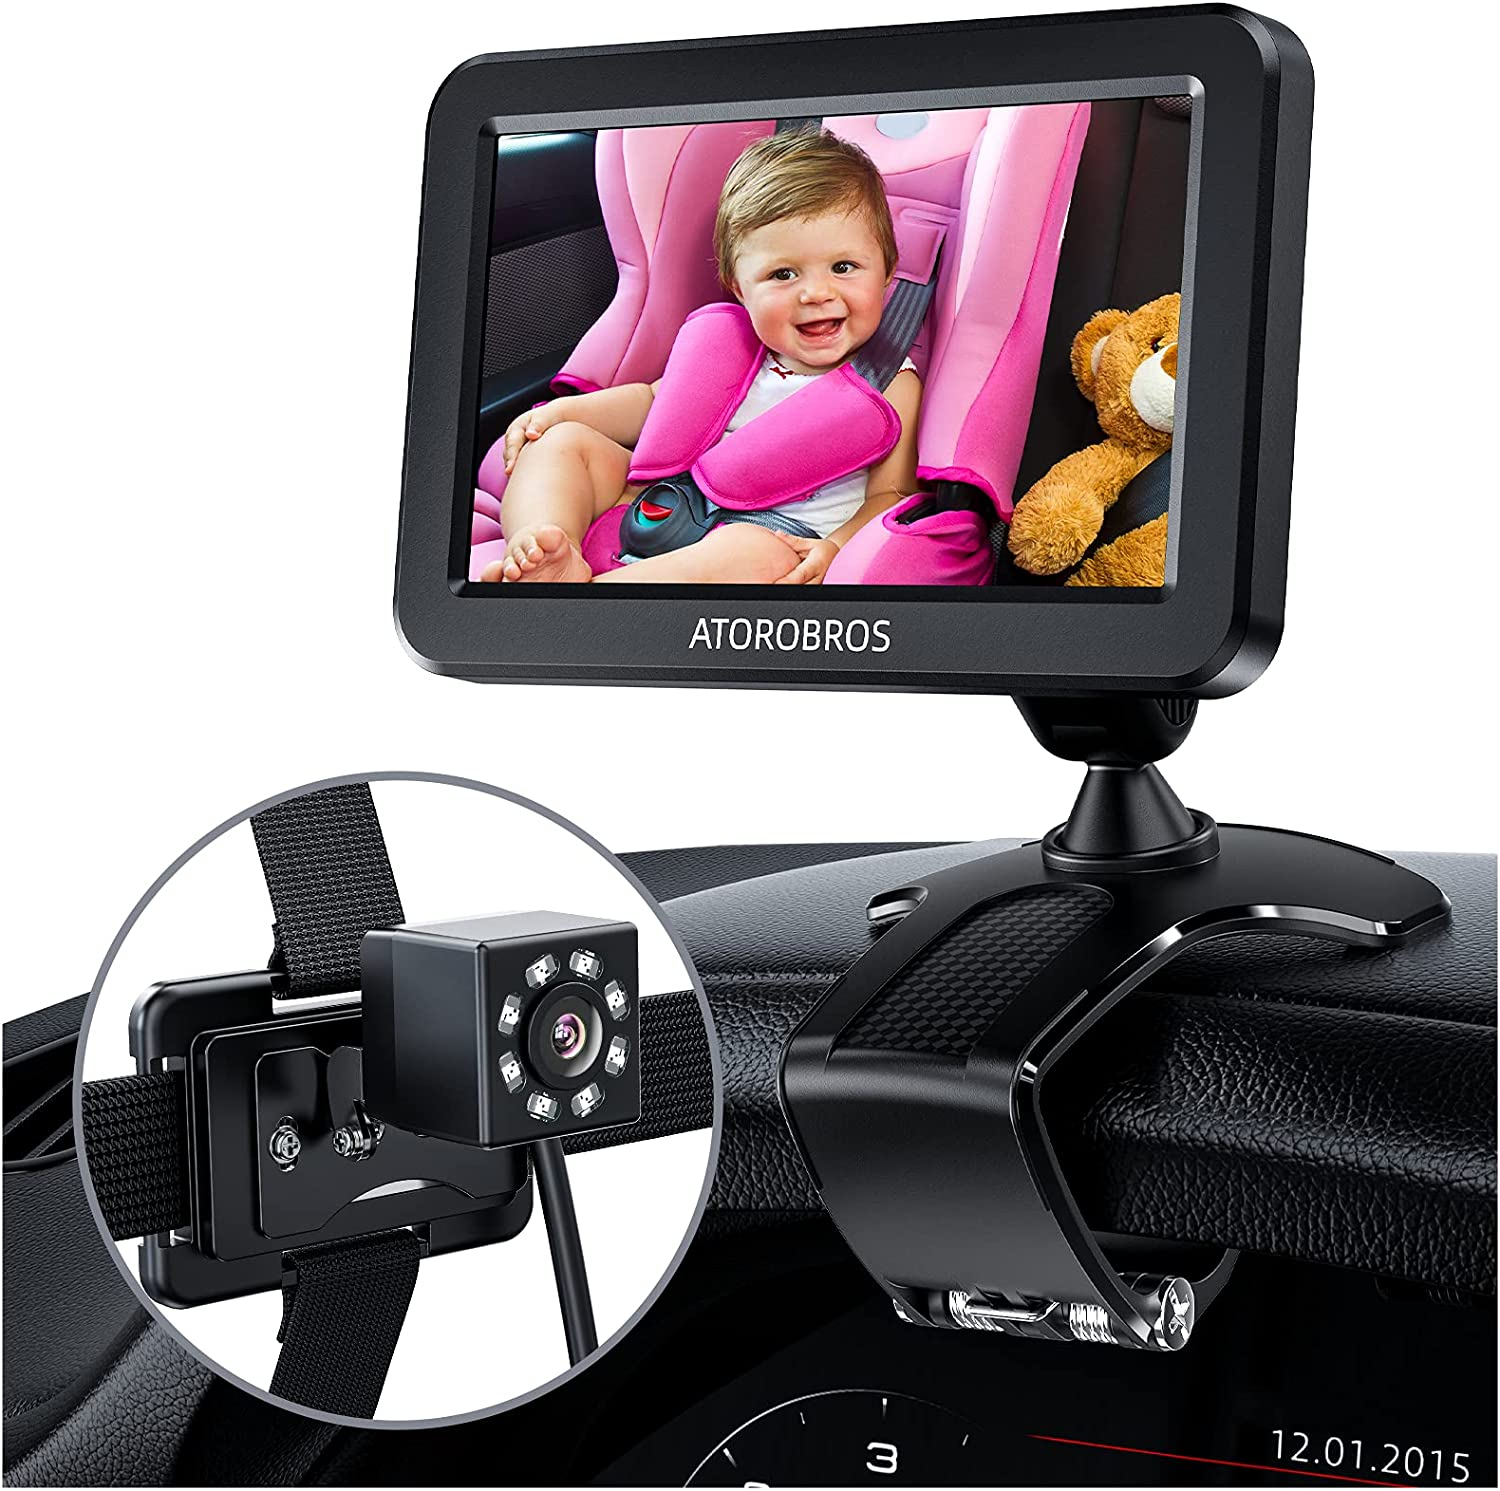 Baby Car Mirror,ATOROBROS Baby Car Camera for Backseat with HD Night Vision Function,360 Degree Rotation Dashboard Clip Mount Display Stand,Wide Crystal Clear View,Convenient to See Baby while Driving